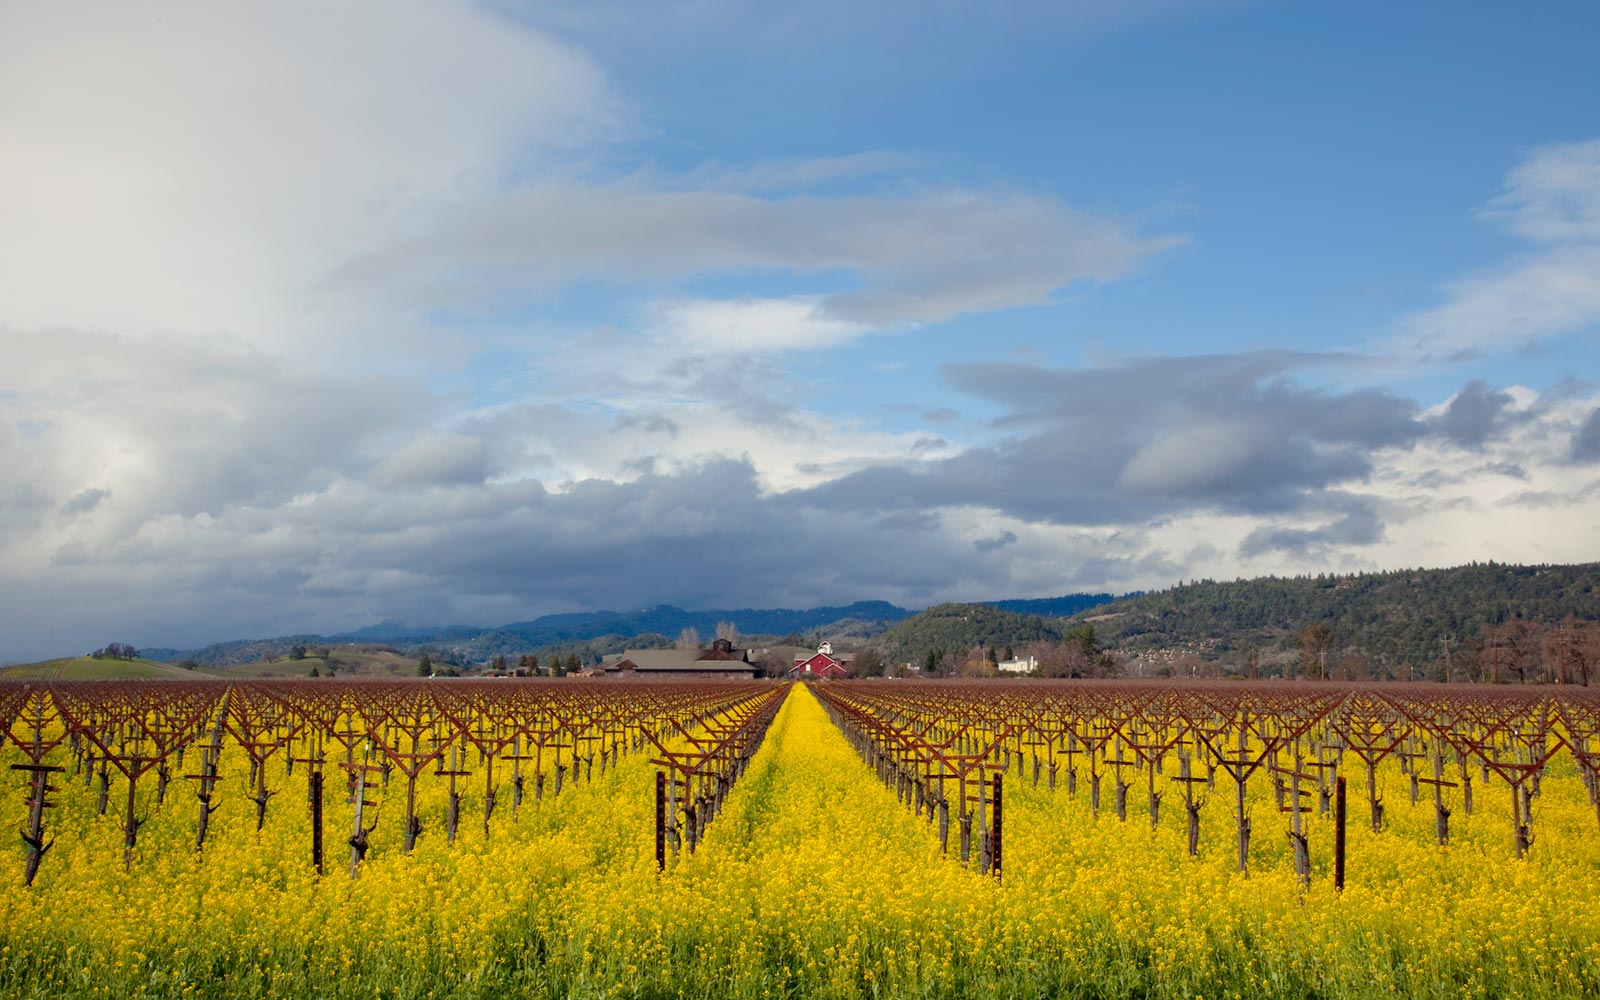 Vineyard and Mustard Flowers in Napa Valley